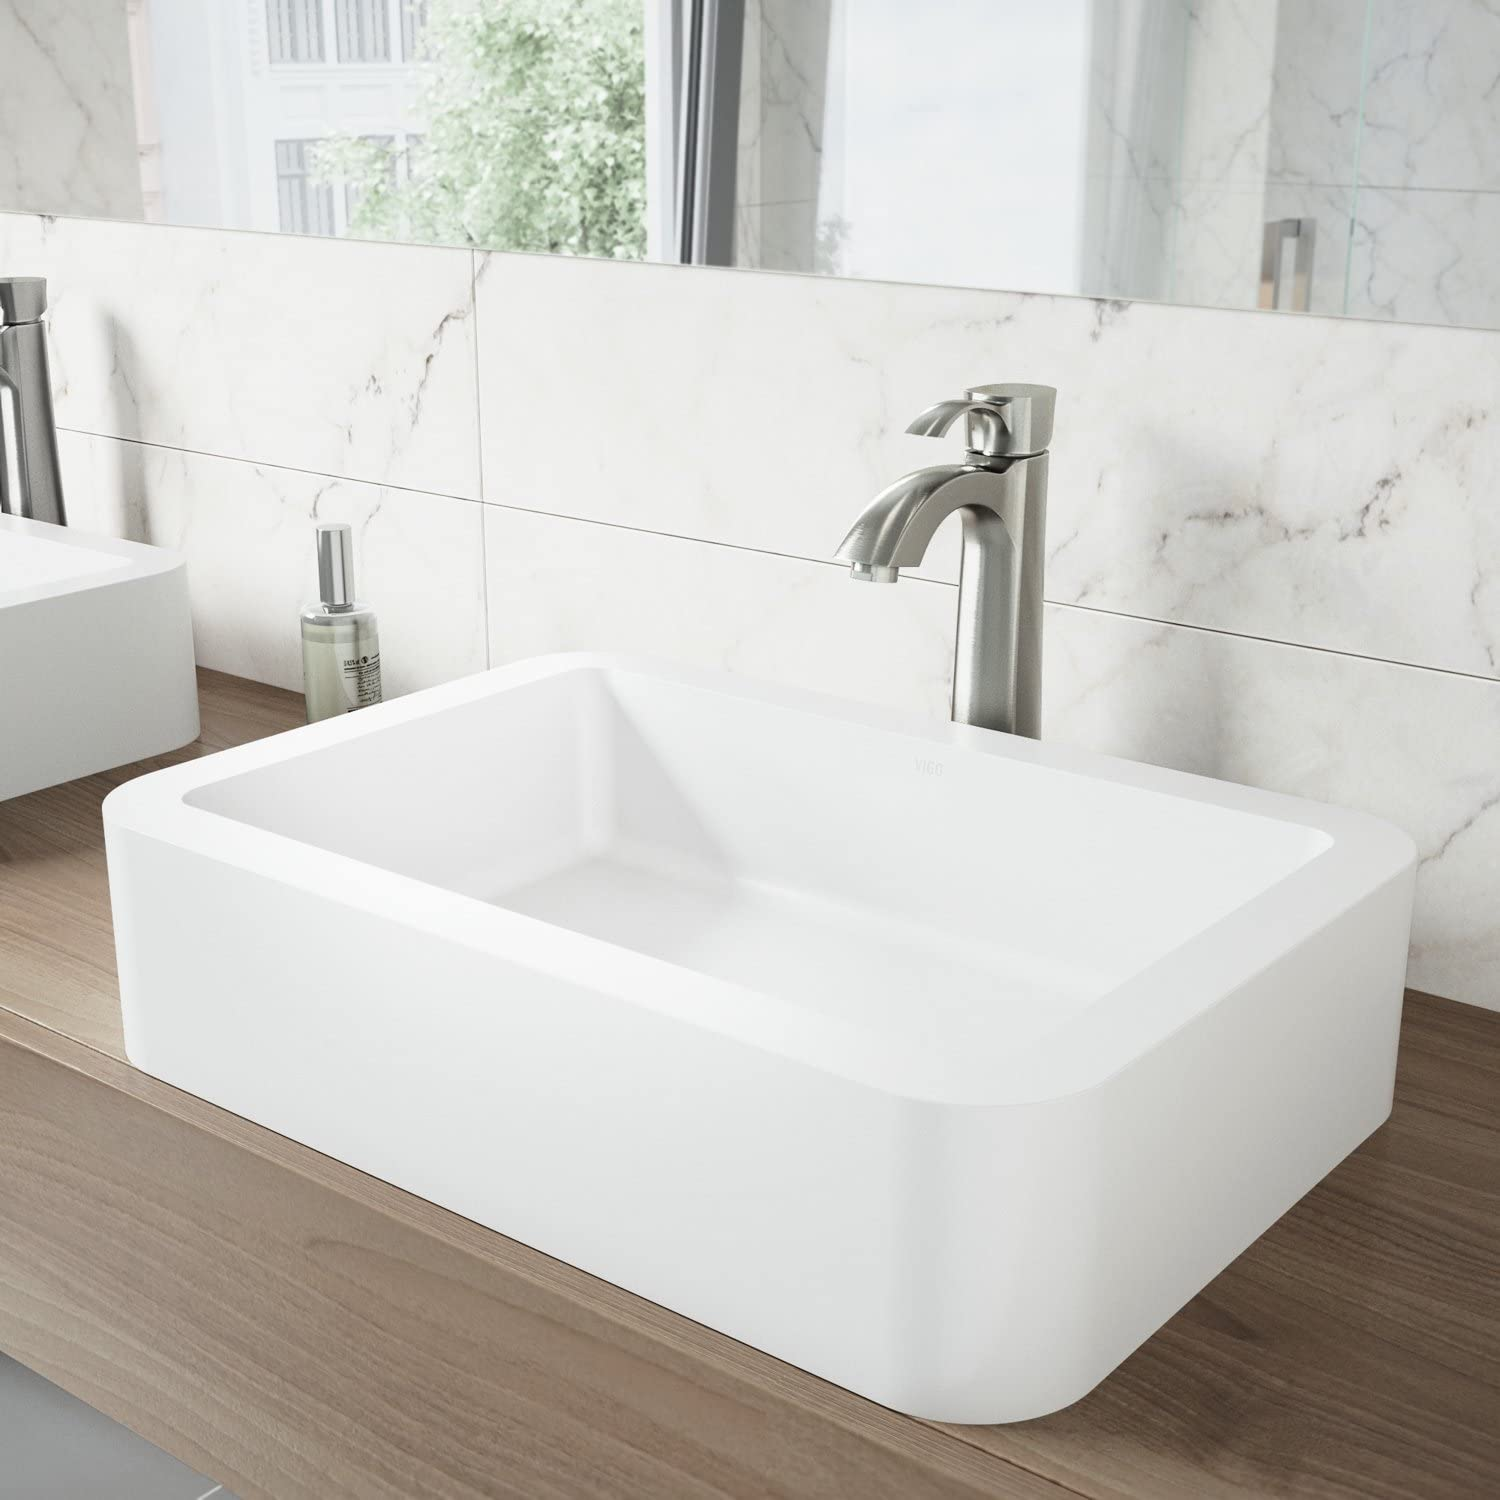 VIGO Petunia Rectangular White PMMA Matte Stone Vessel Bathroom Sink, Non-Porous, Solid Core, Stain Resistant Bowl, Matte White Finish